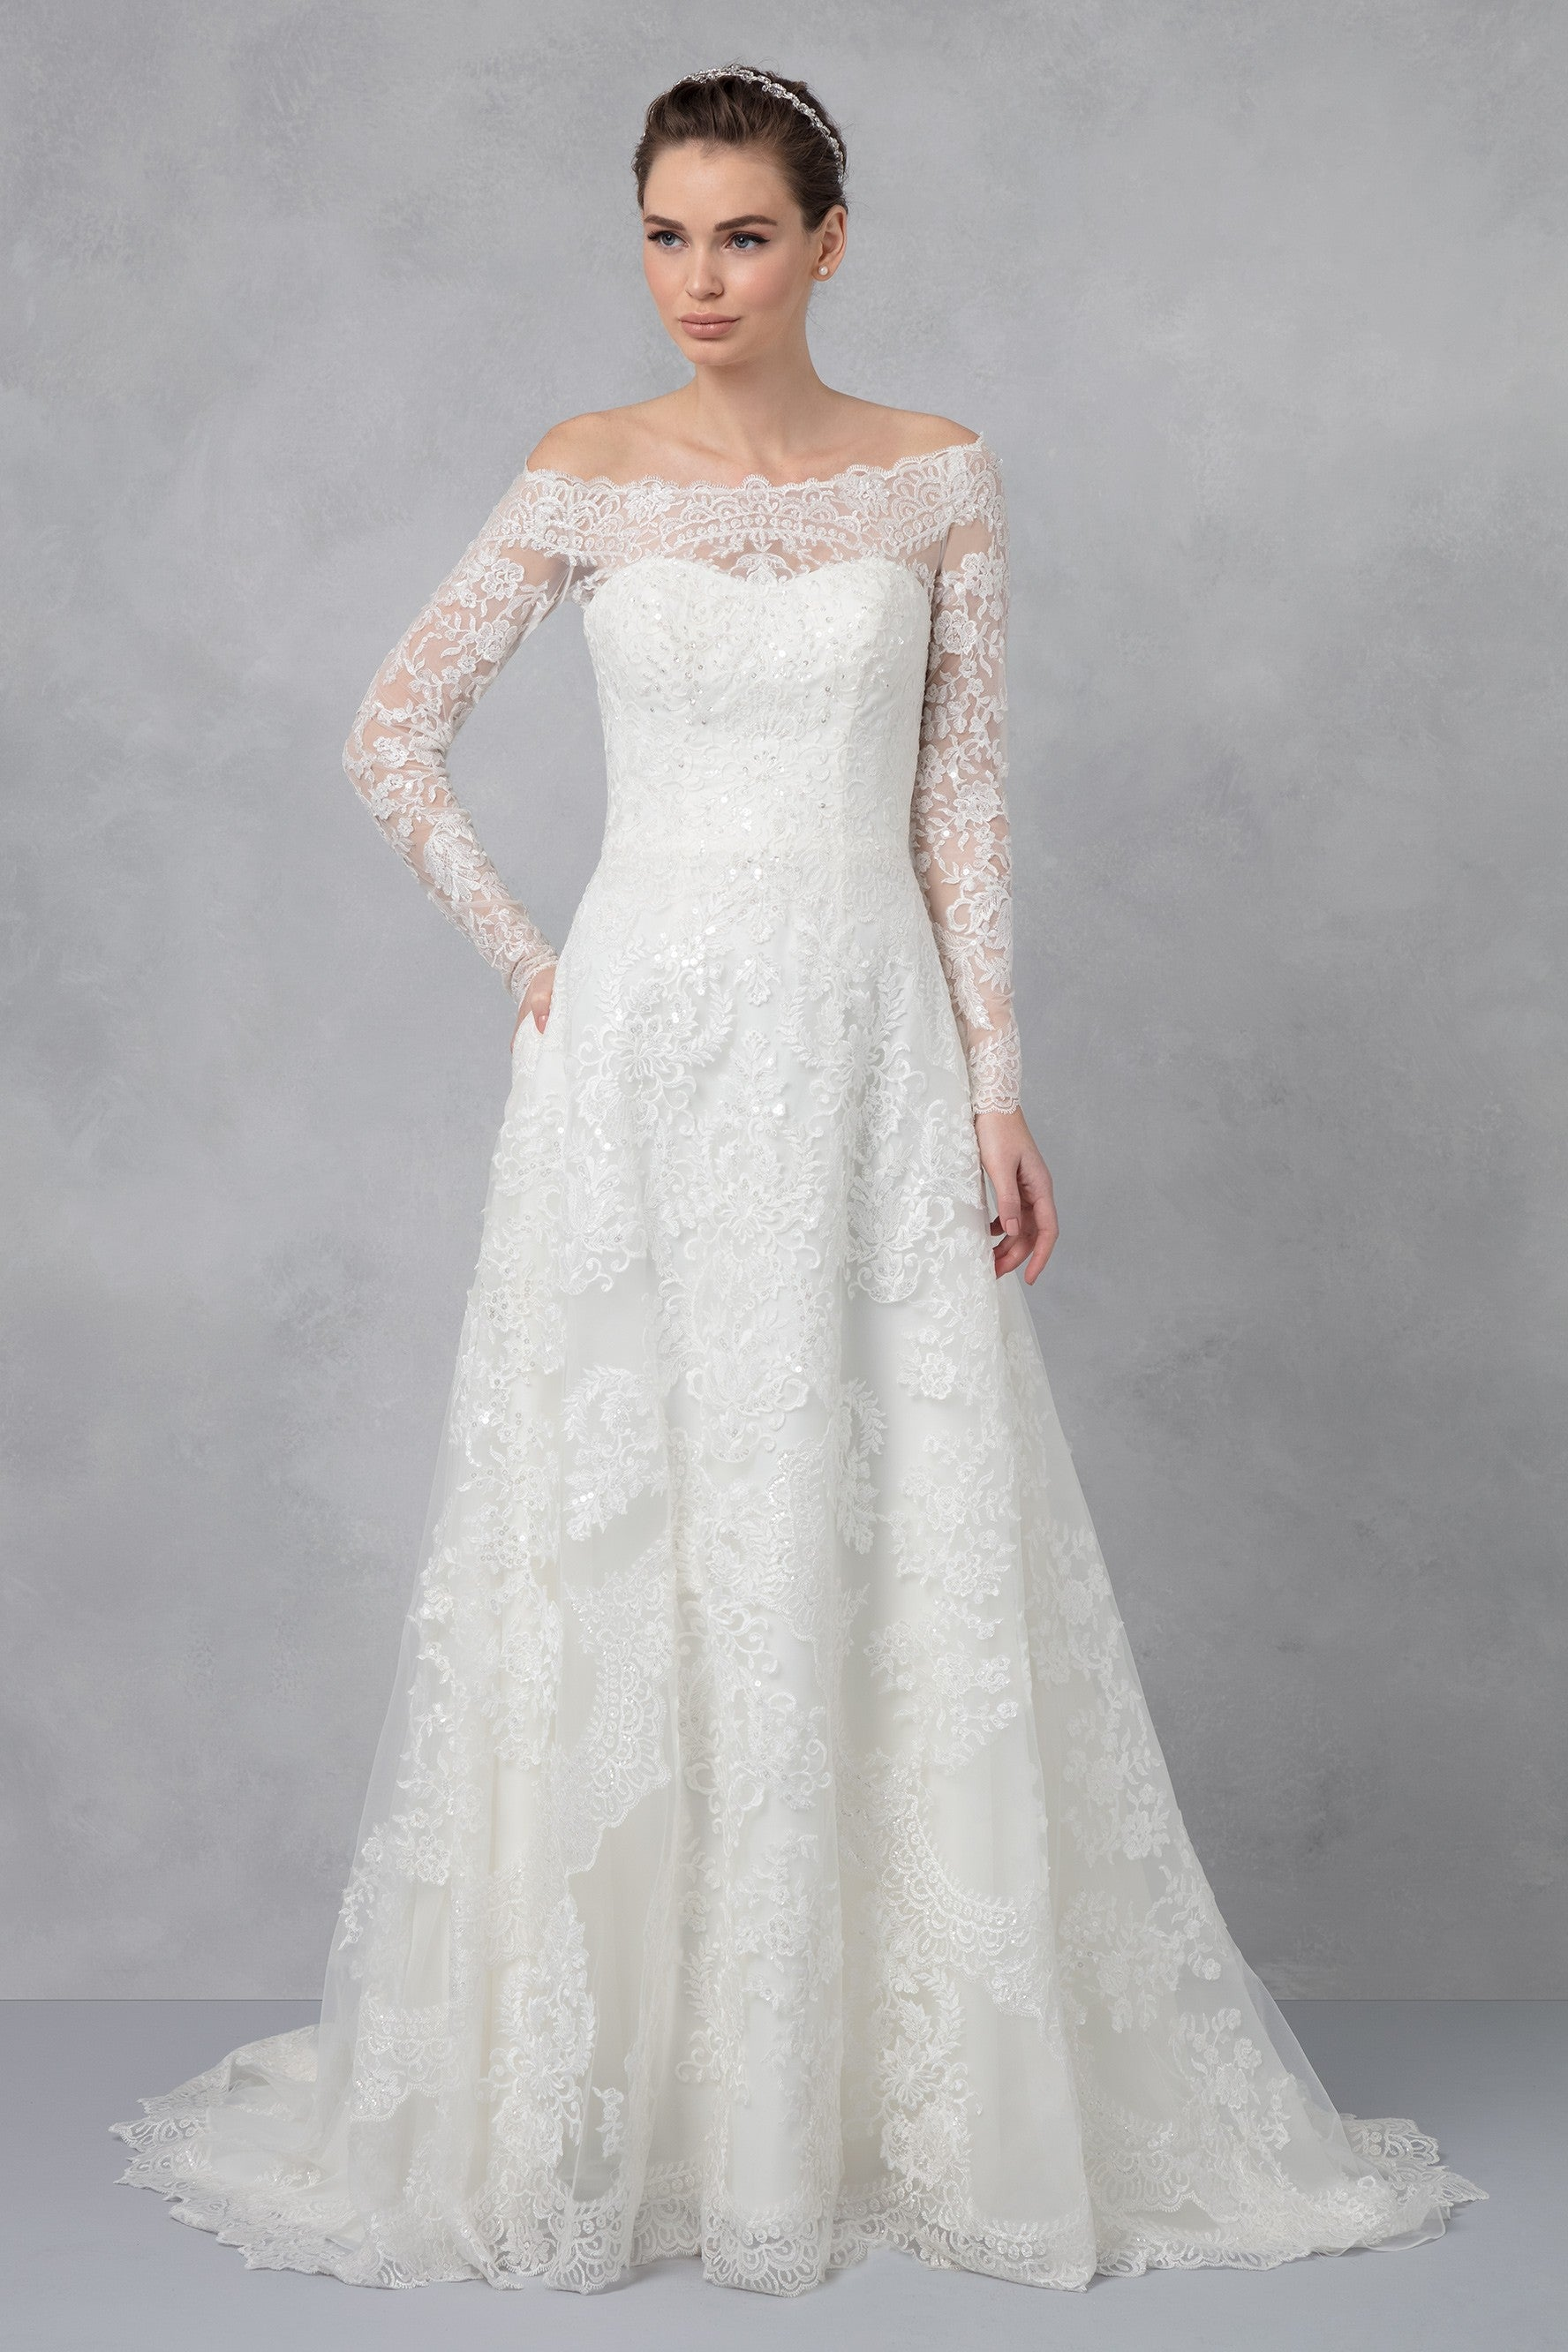 Off-The-Shoulder Lace A-Line Wedding Dress-CWG765